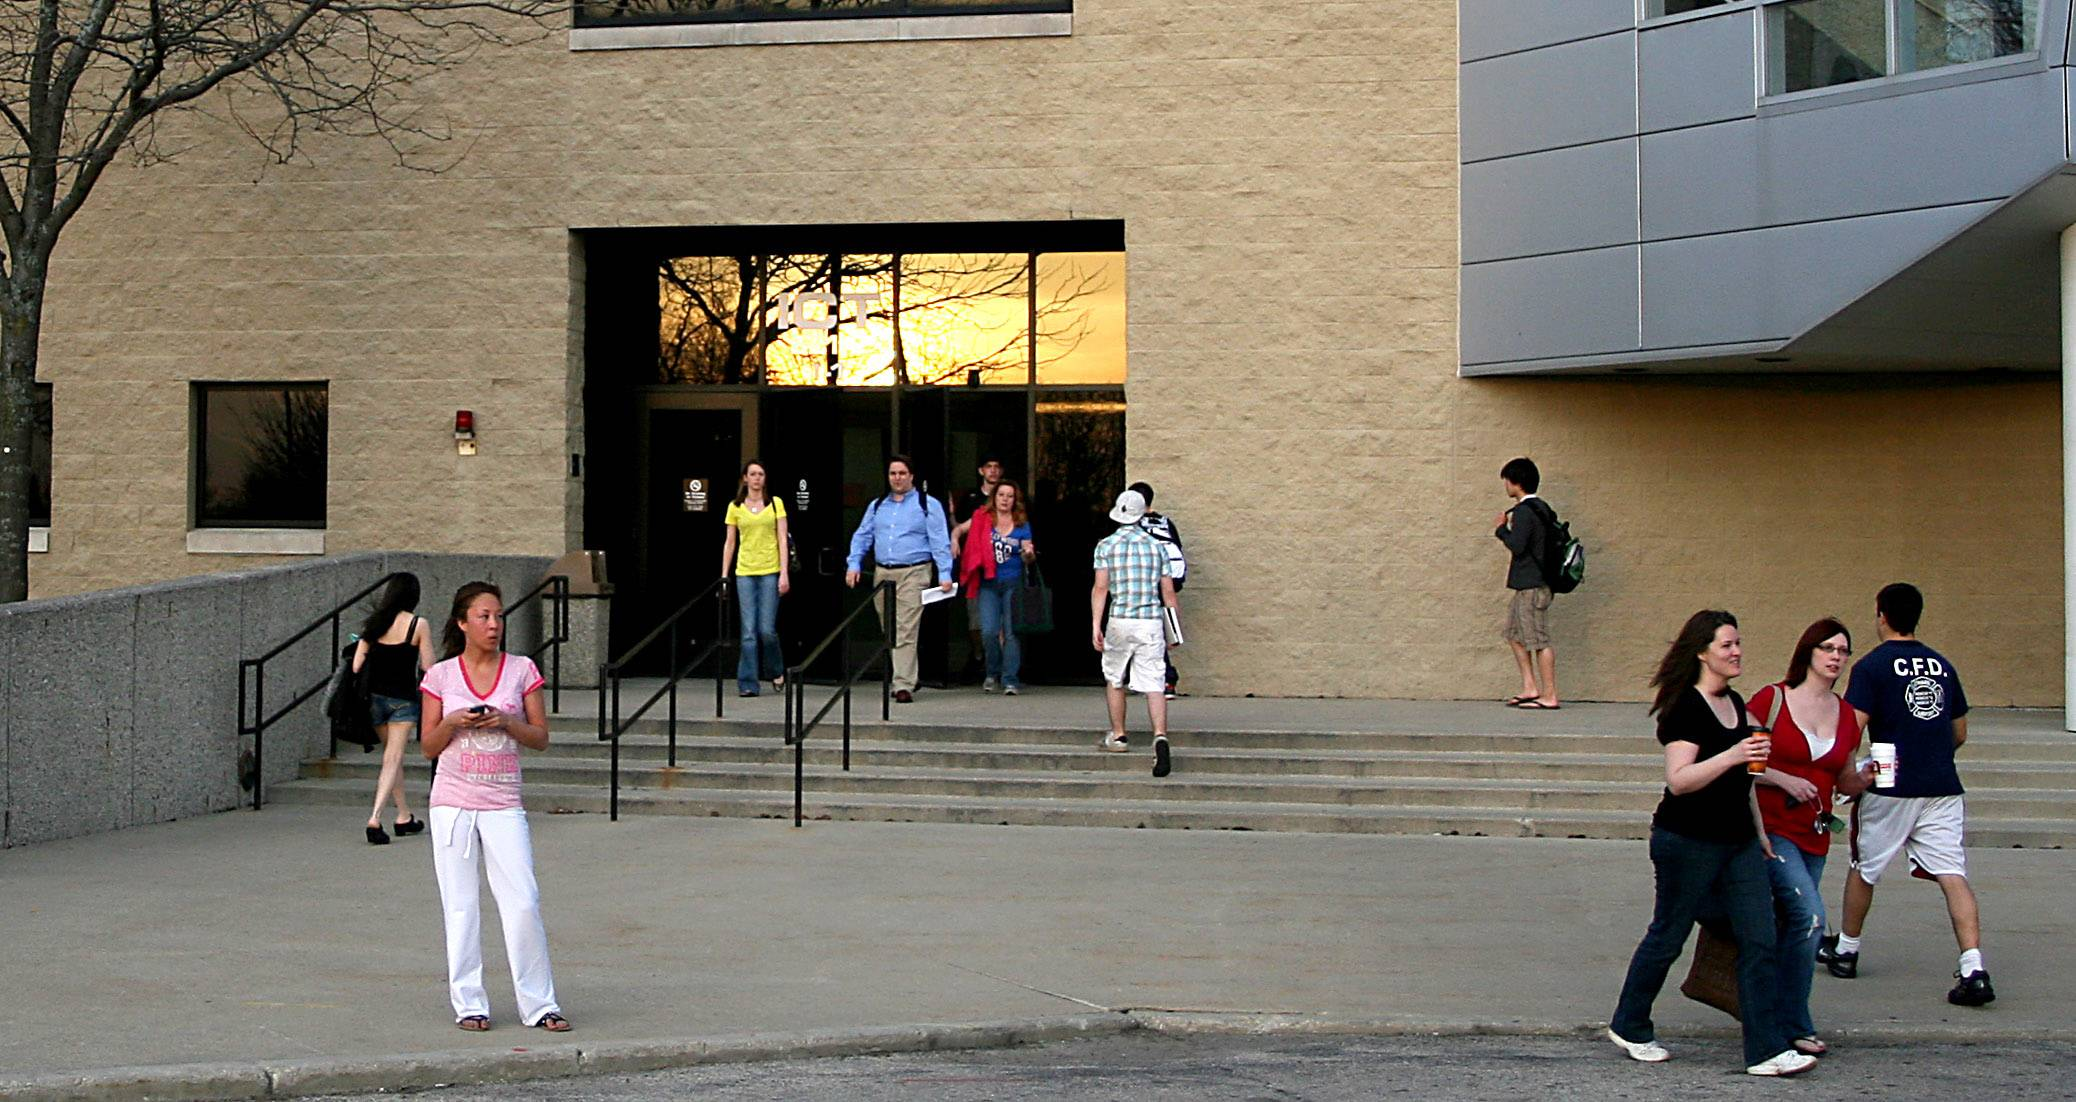 Students and visitors move about outside the ICT building on the campus of Elgin Community College last week.